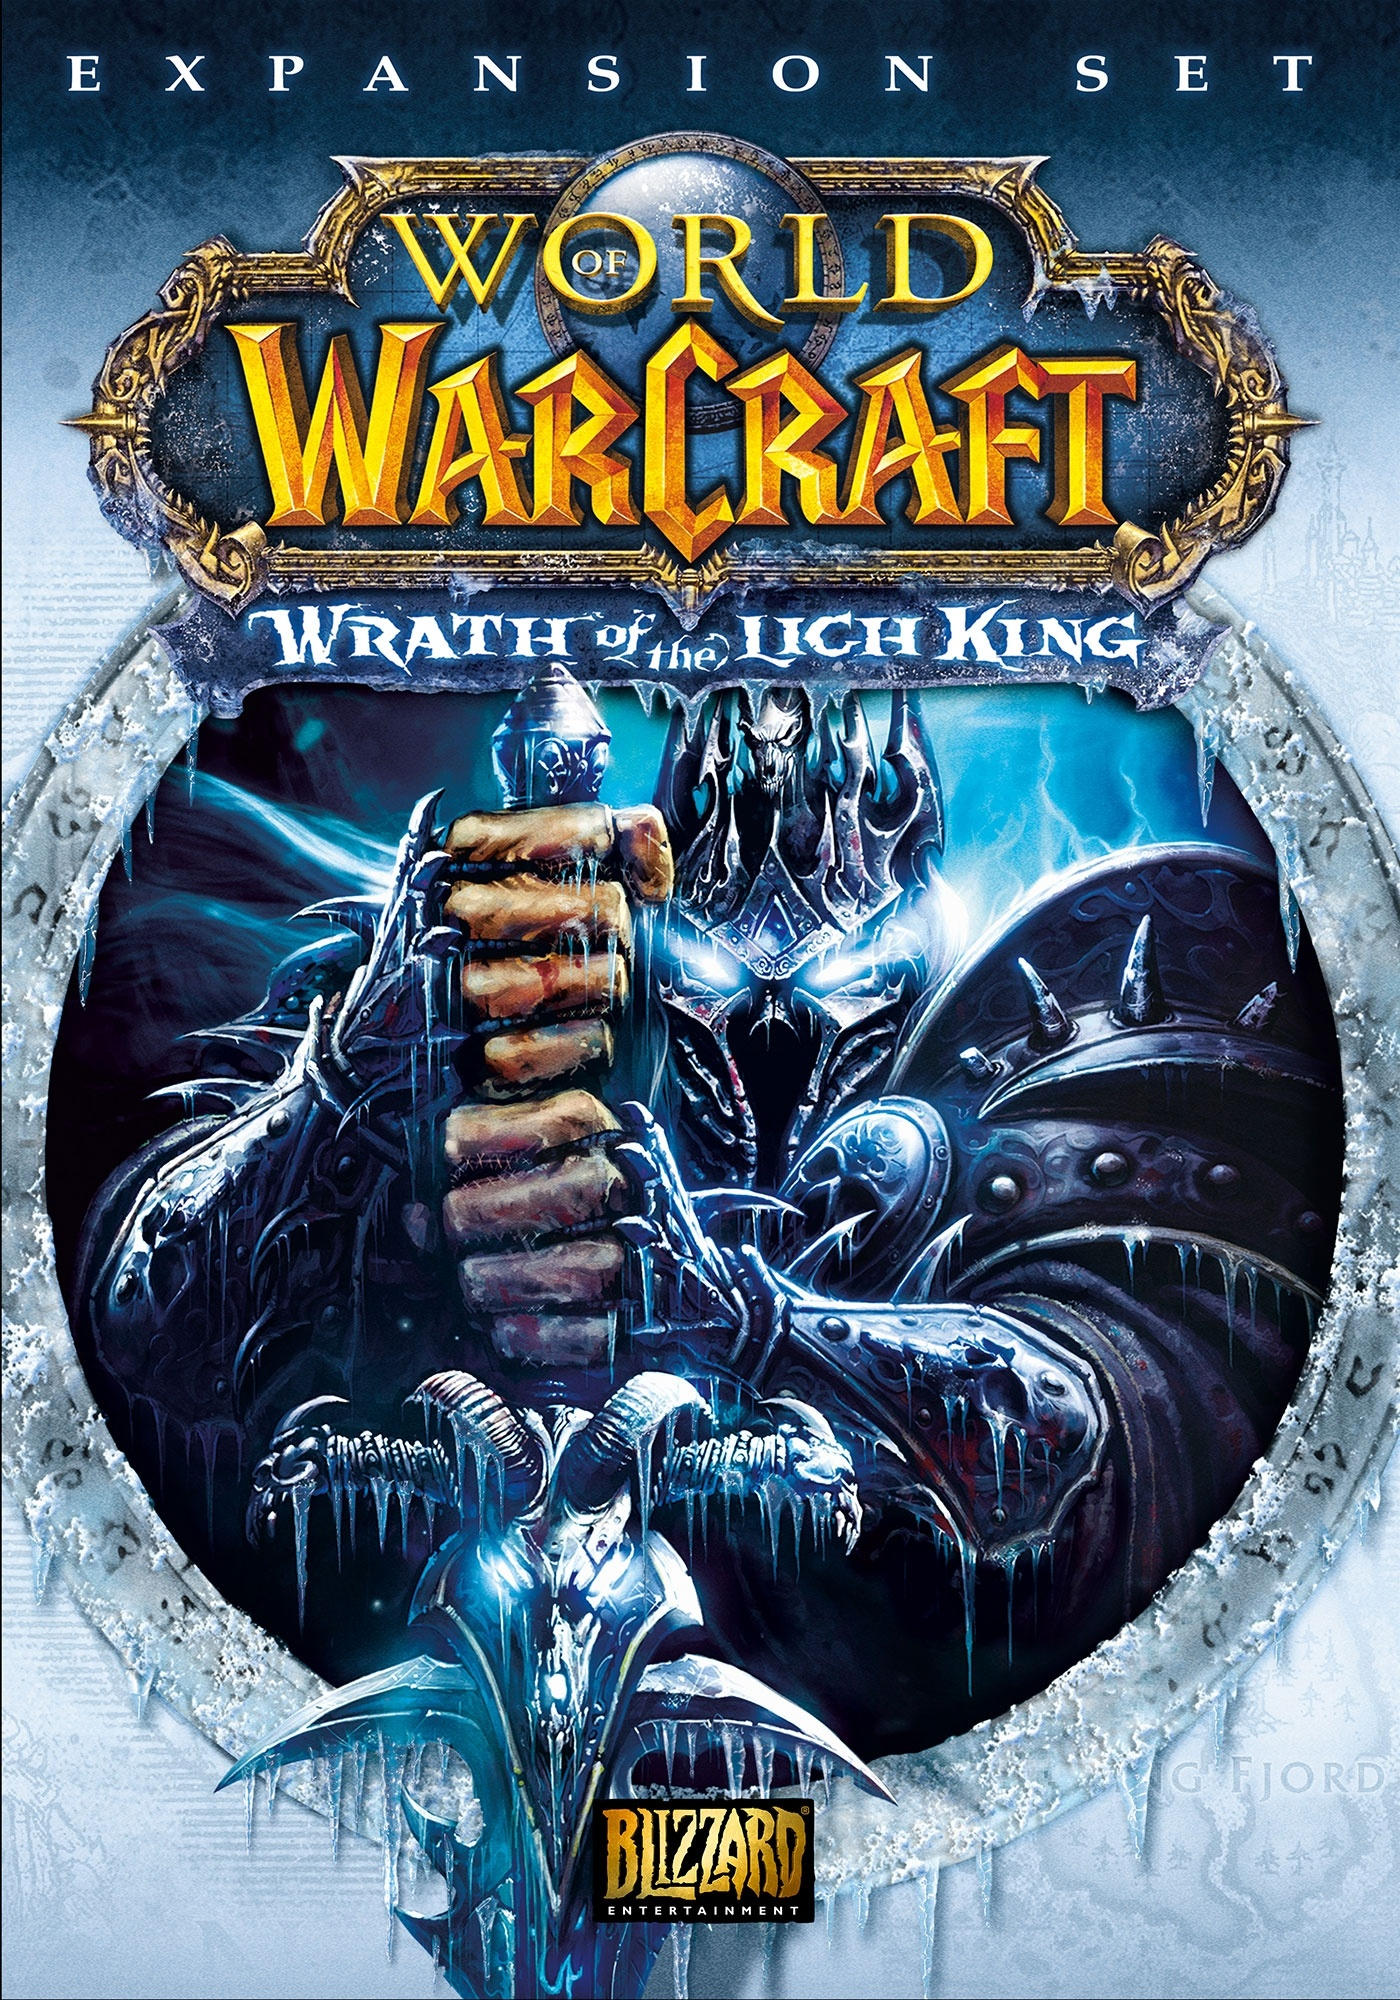 Wrath of the lick king inscription